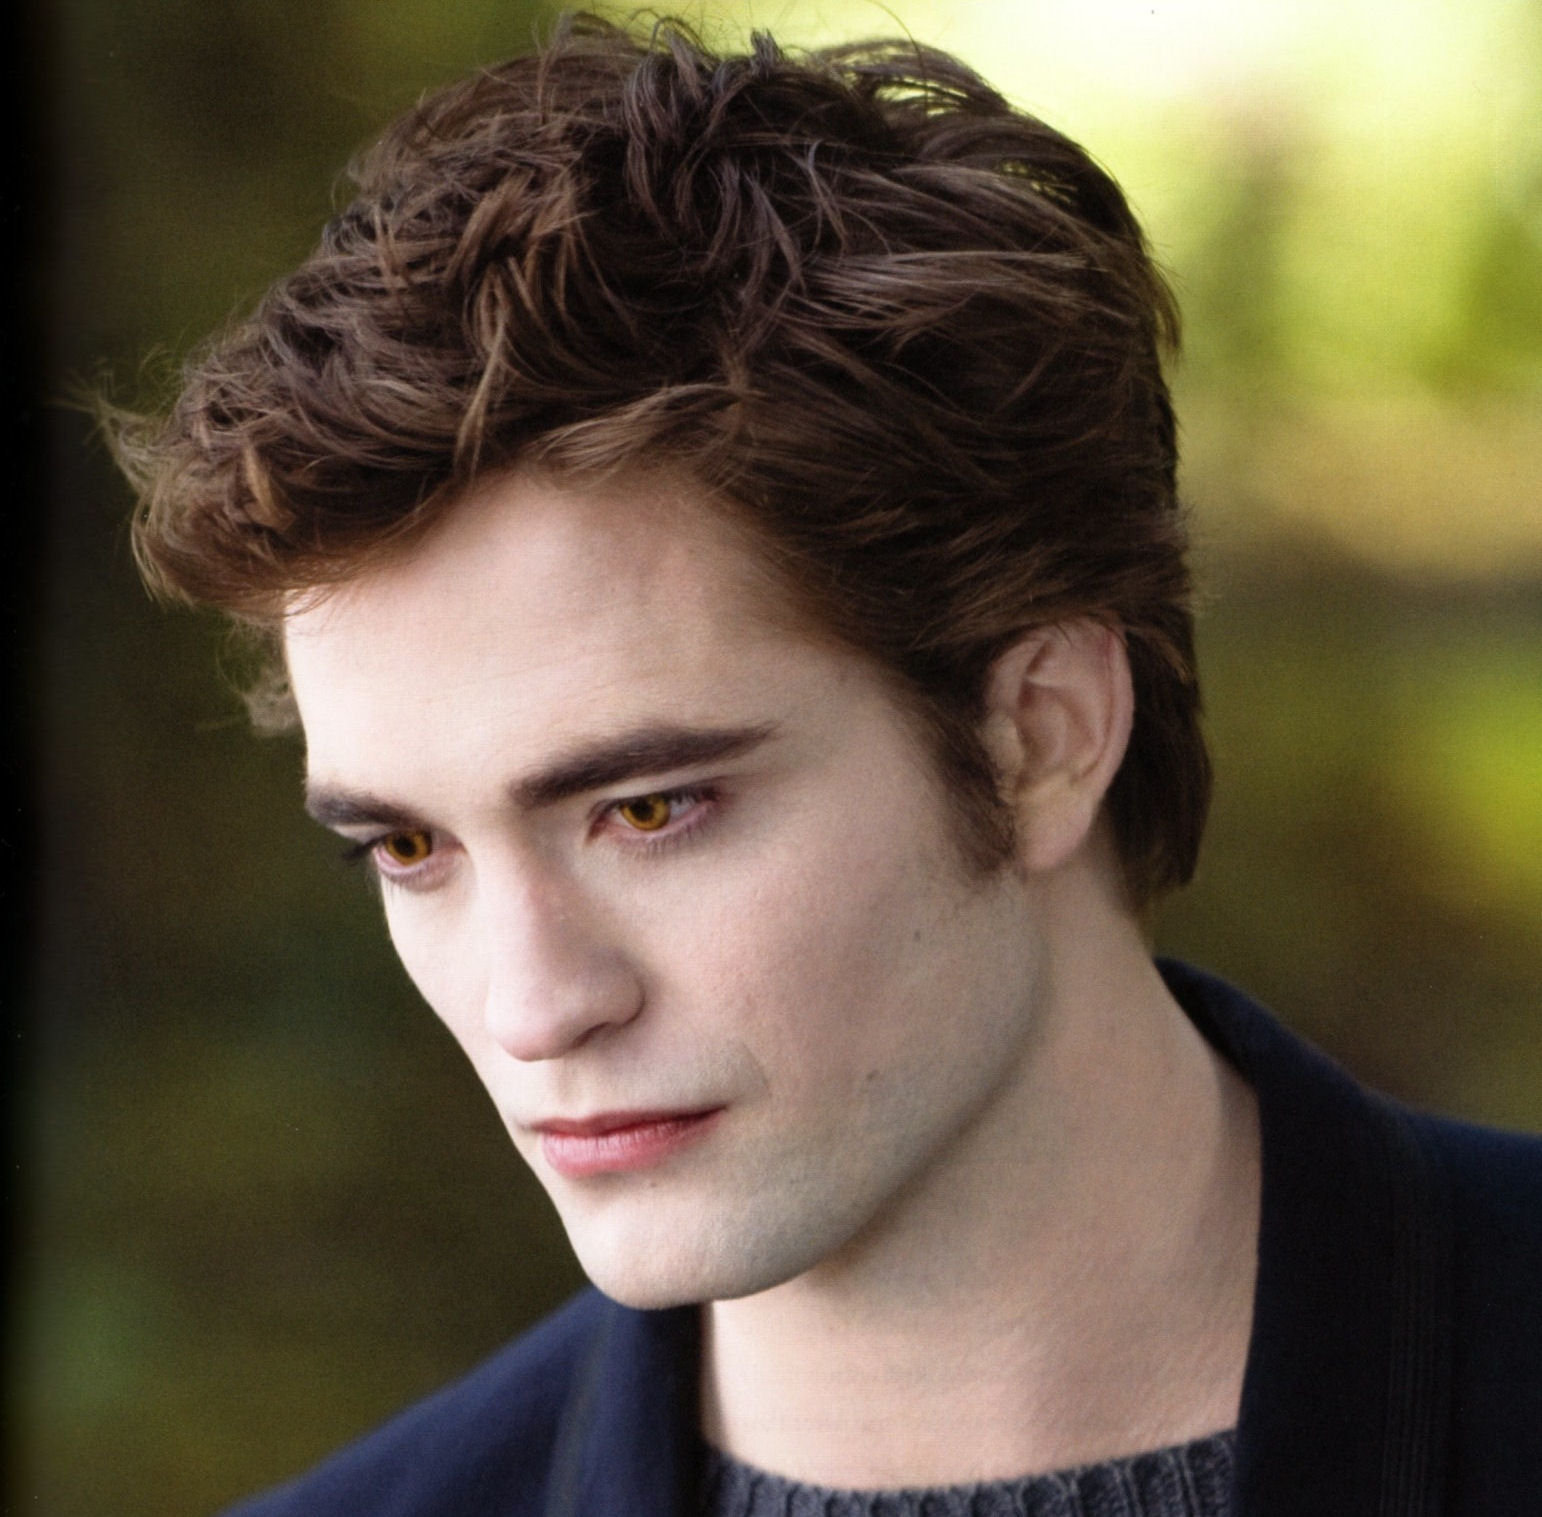 Edward Edward Cullen Photo 27673809 Fanpop